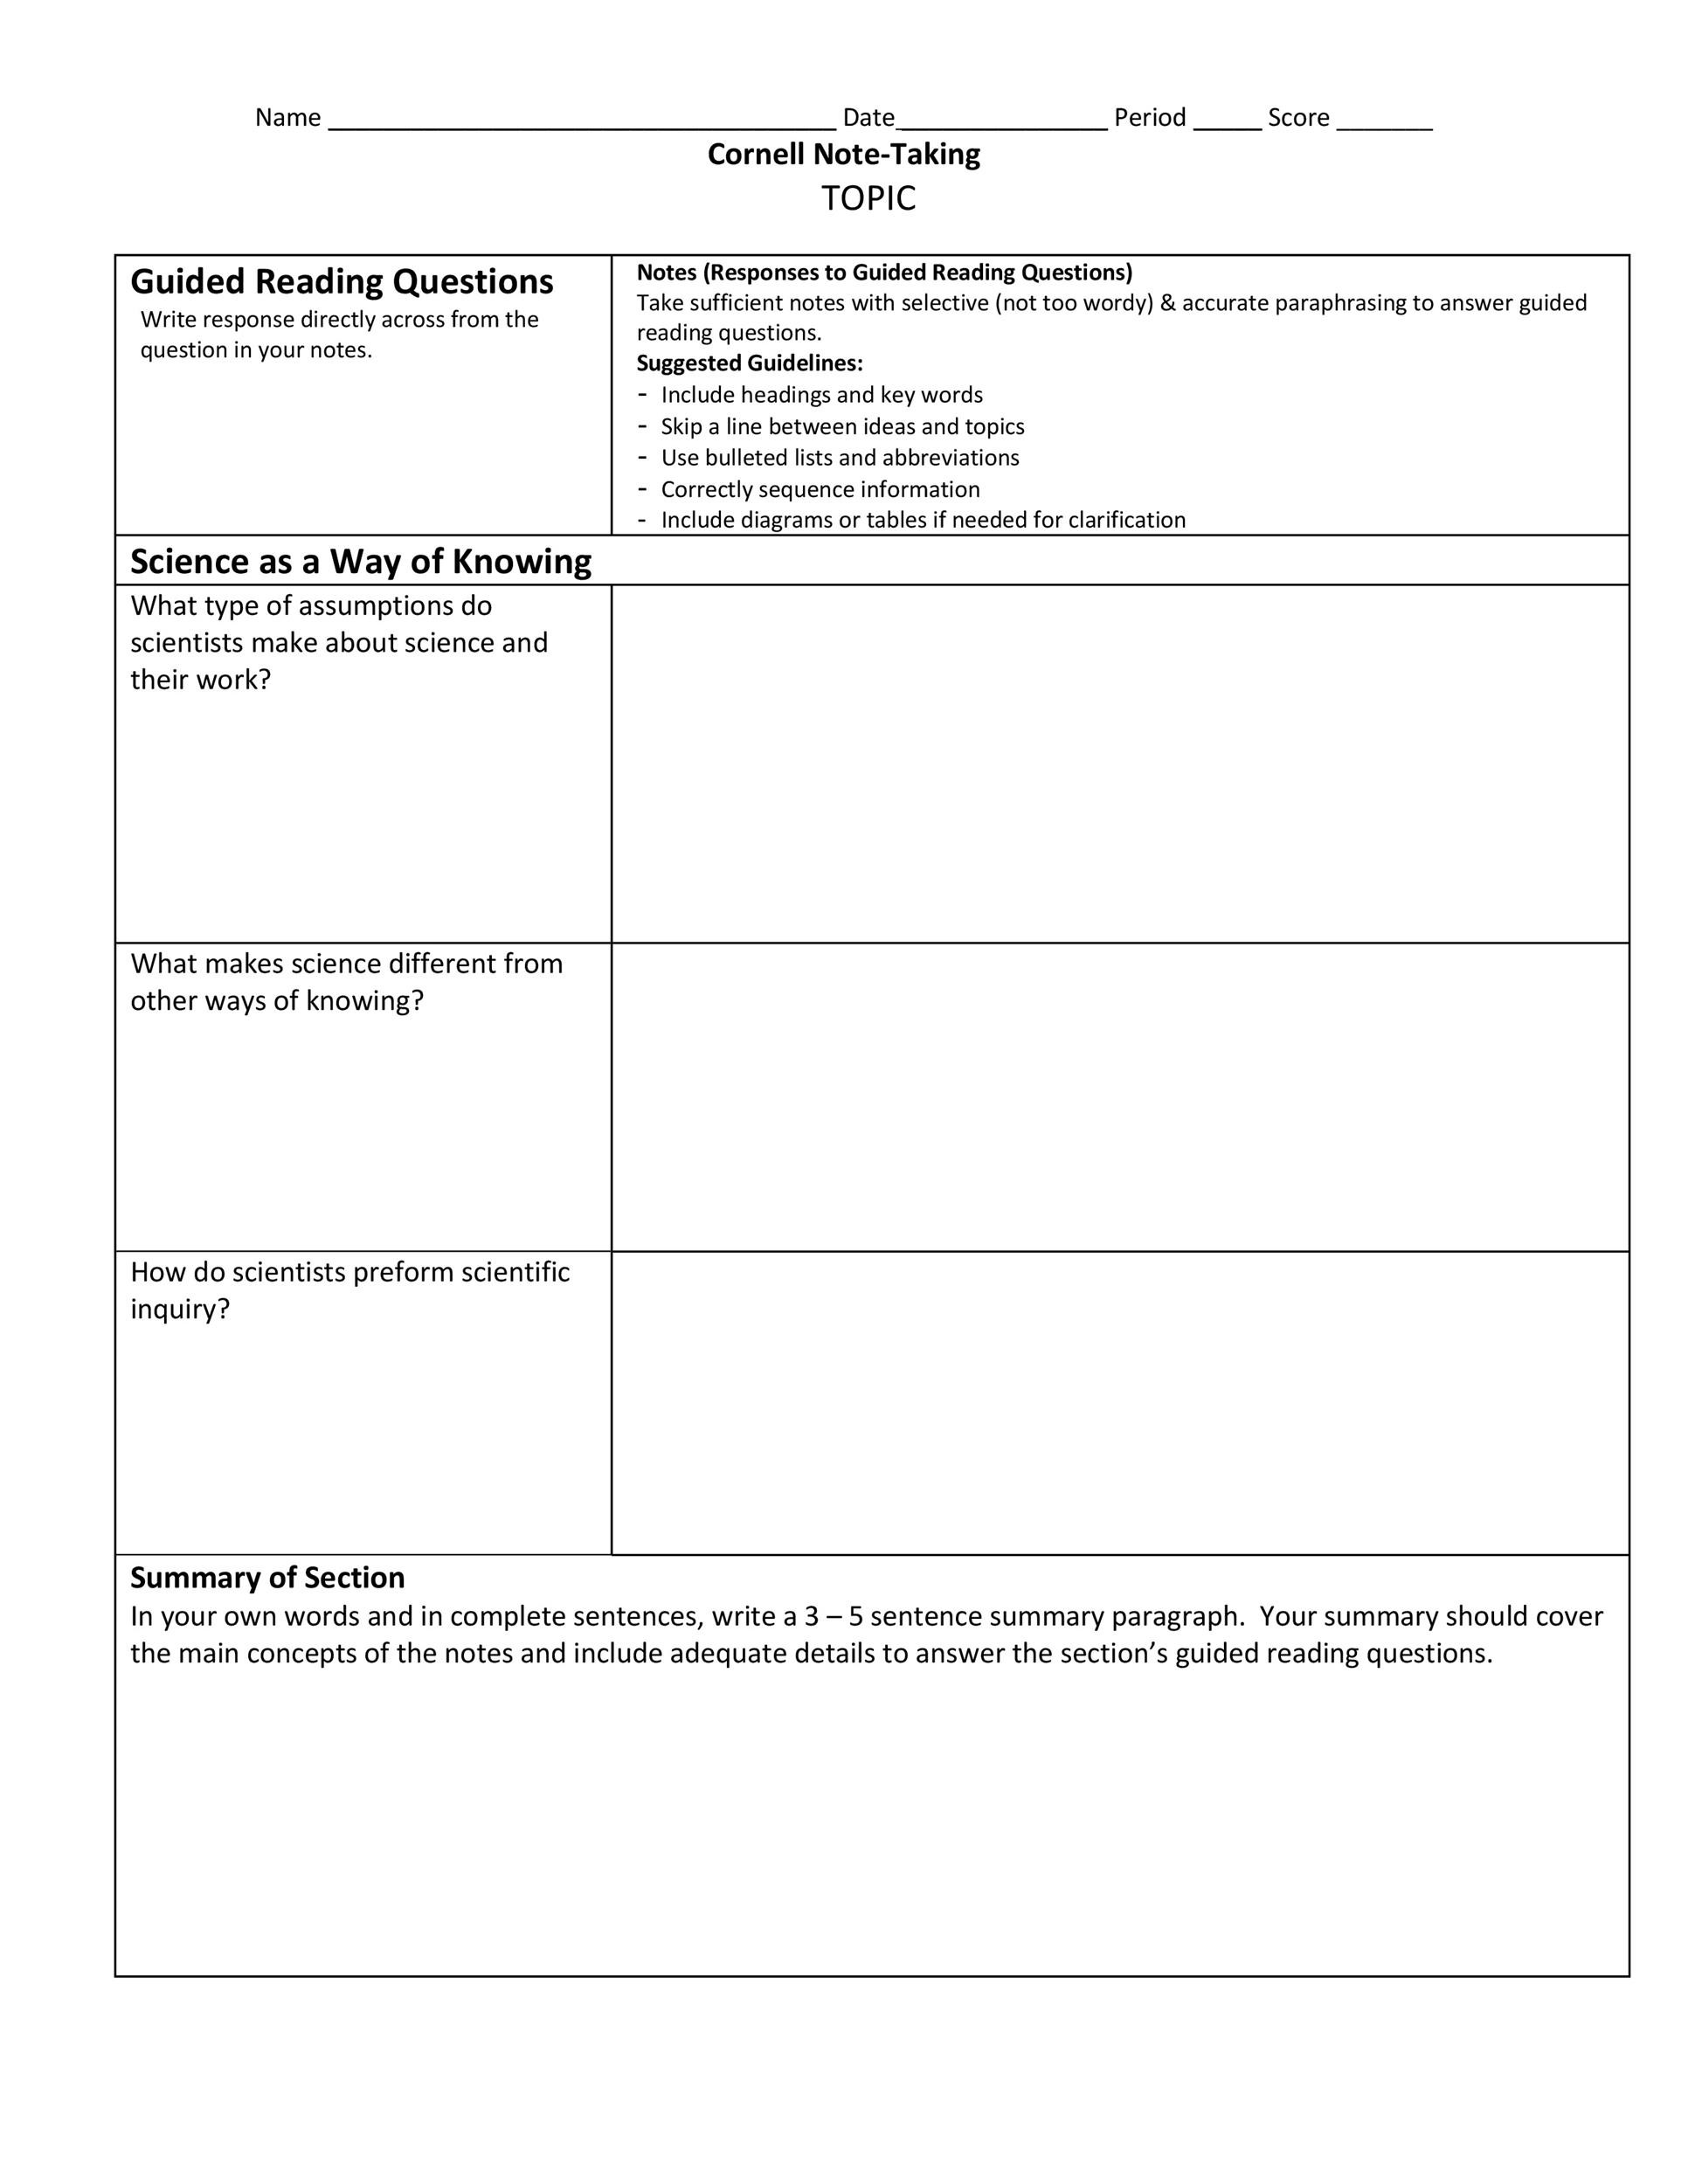 Free Cornell Notes Template 22